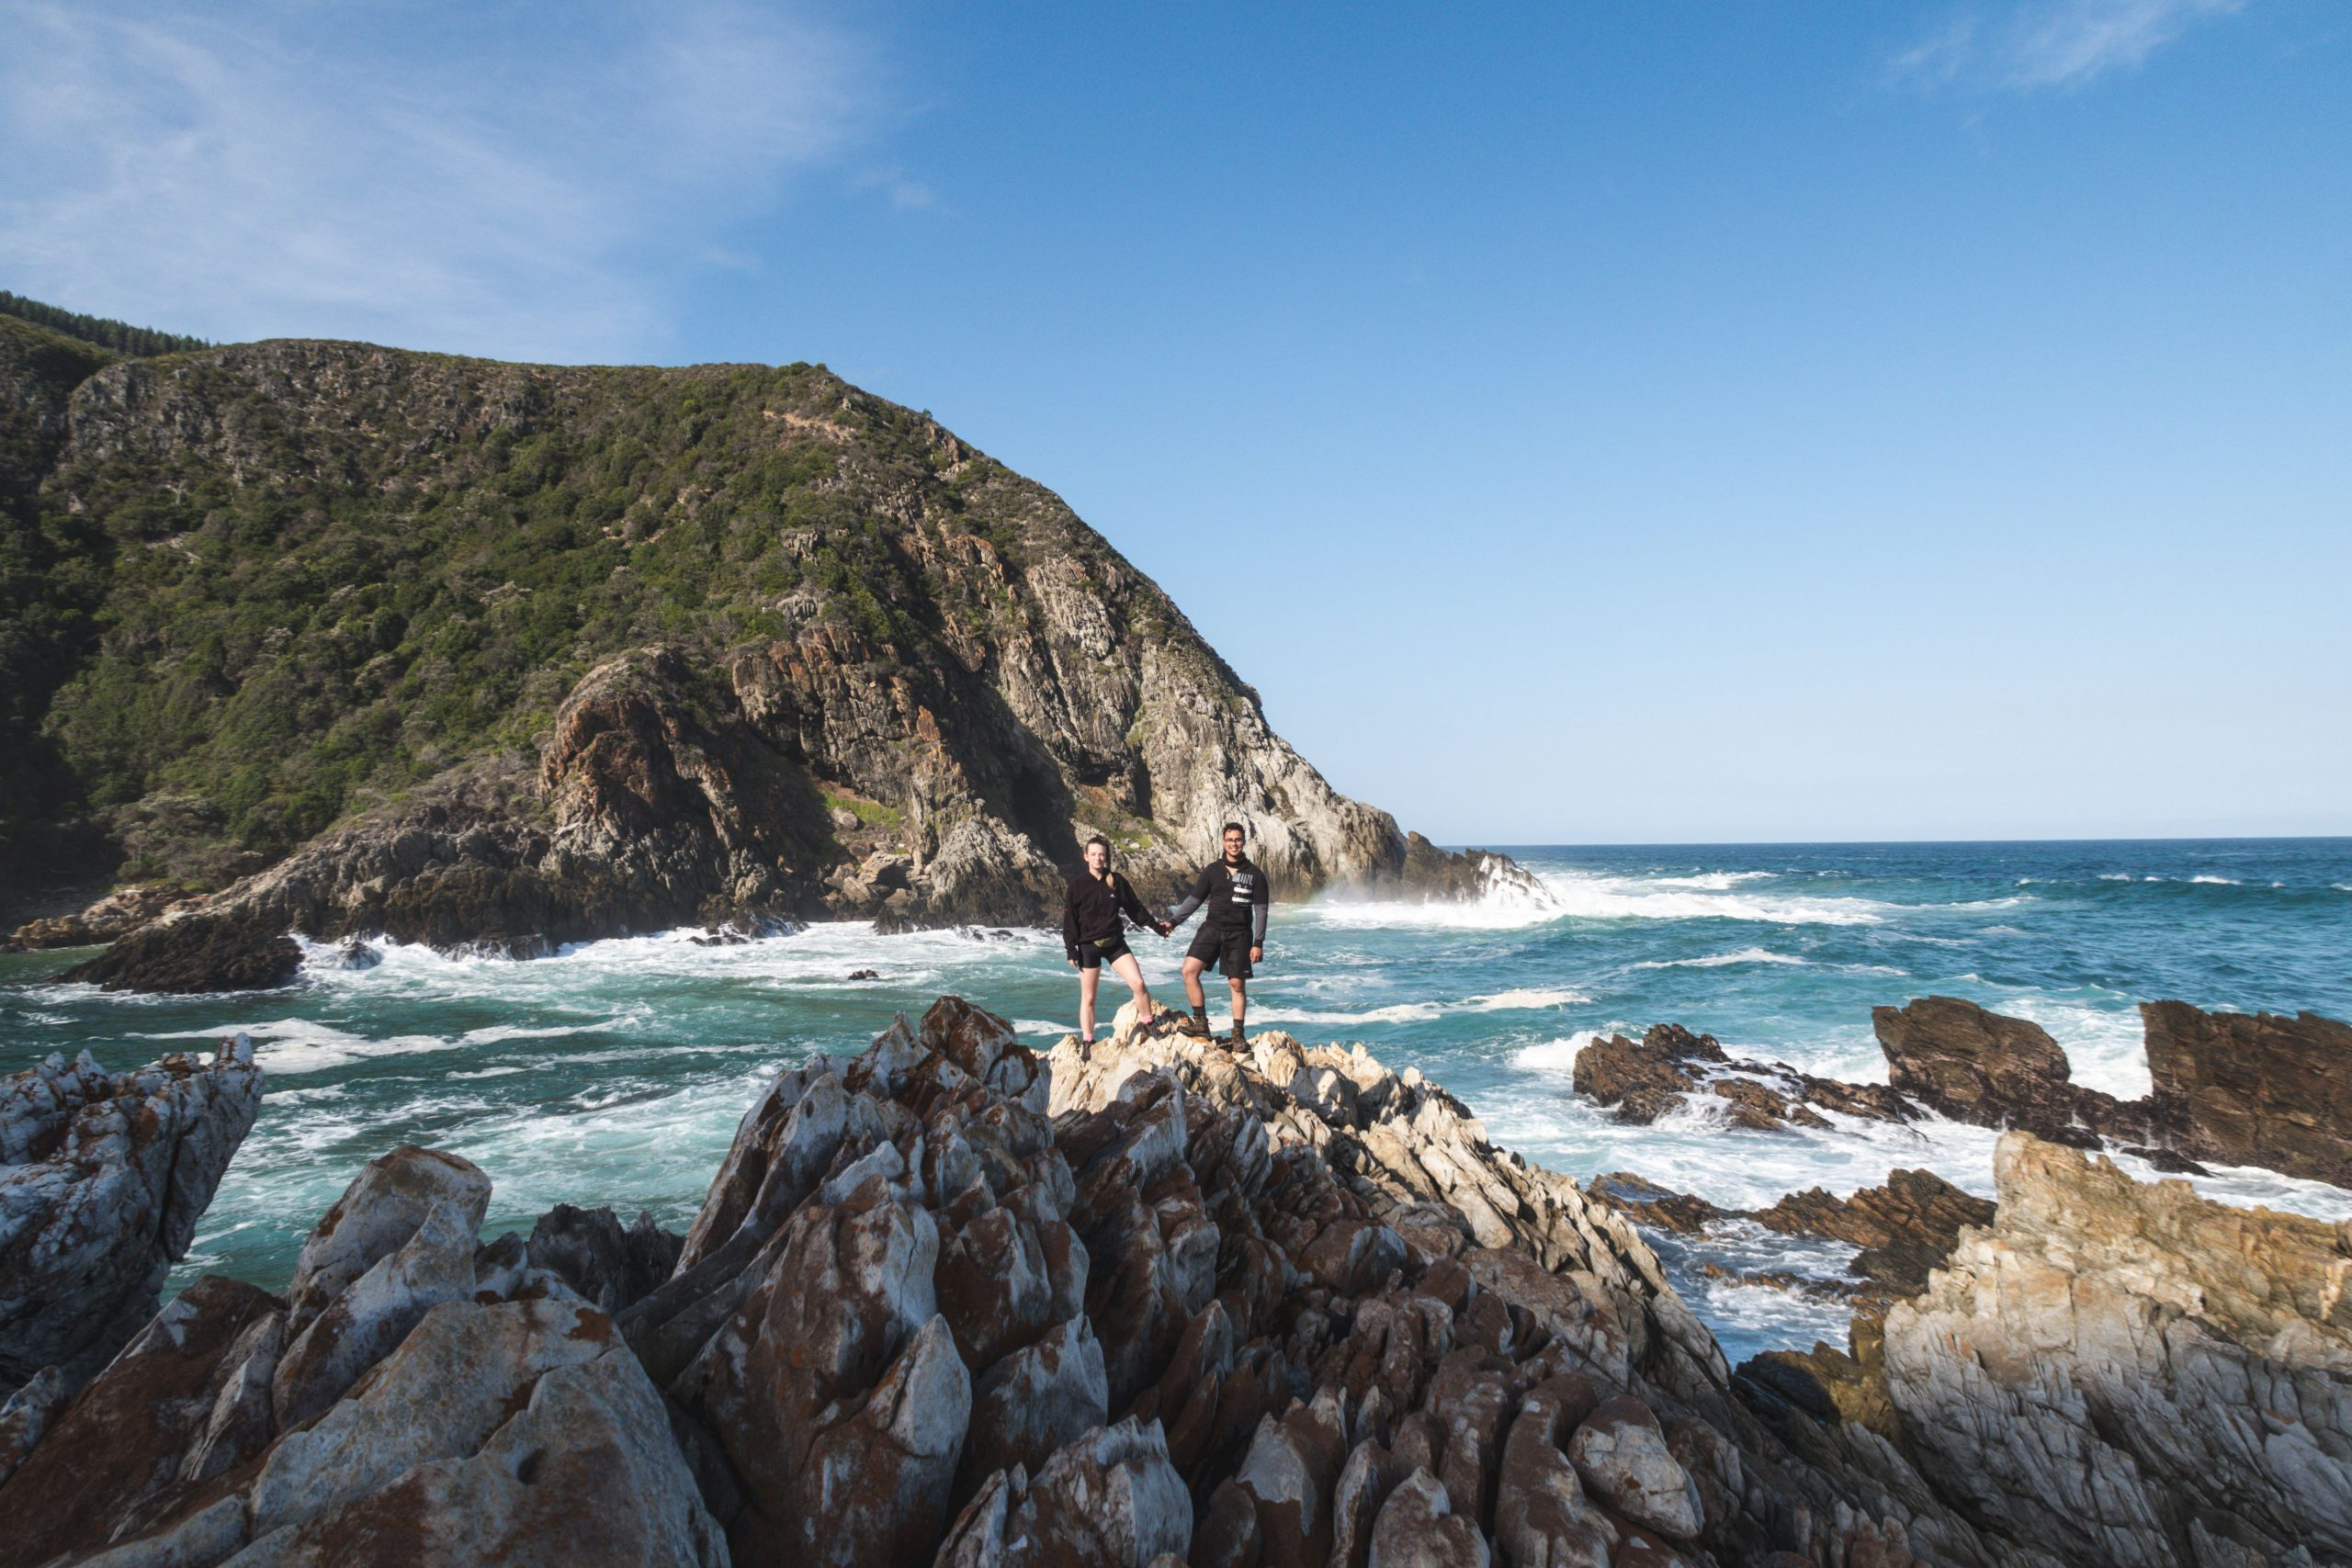 photographers capturing a special moment by the ocean on the otter trail hike